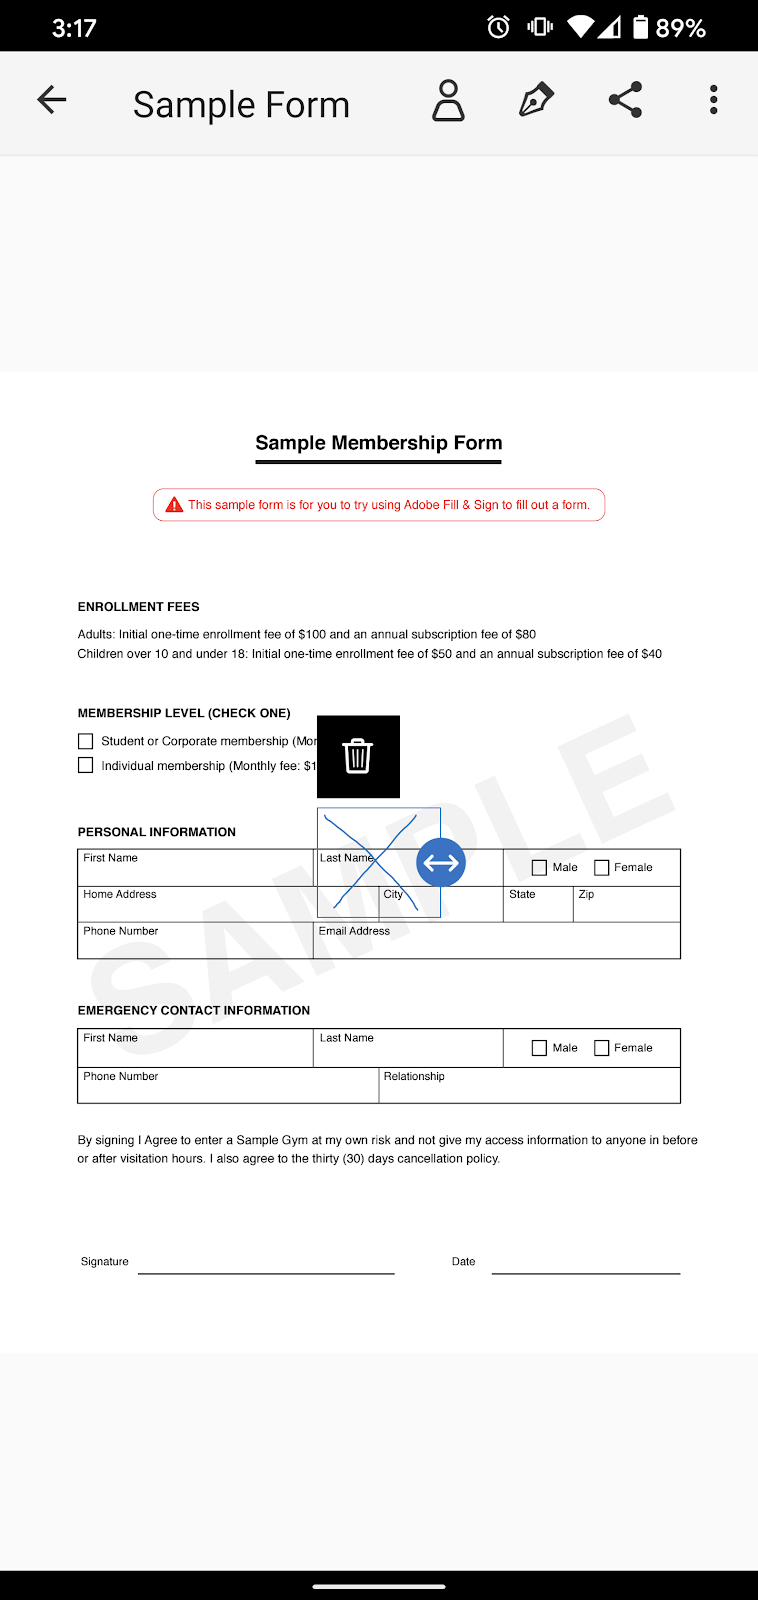 Sample Form page with the example Initials in the previous image moved from the top of the page to the middle of the page